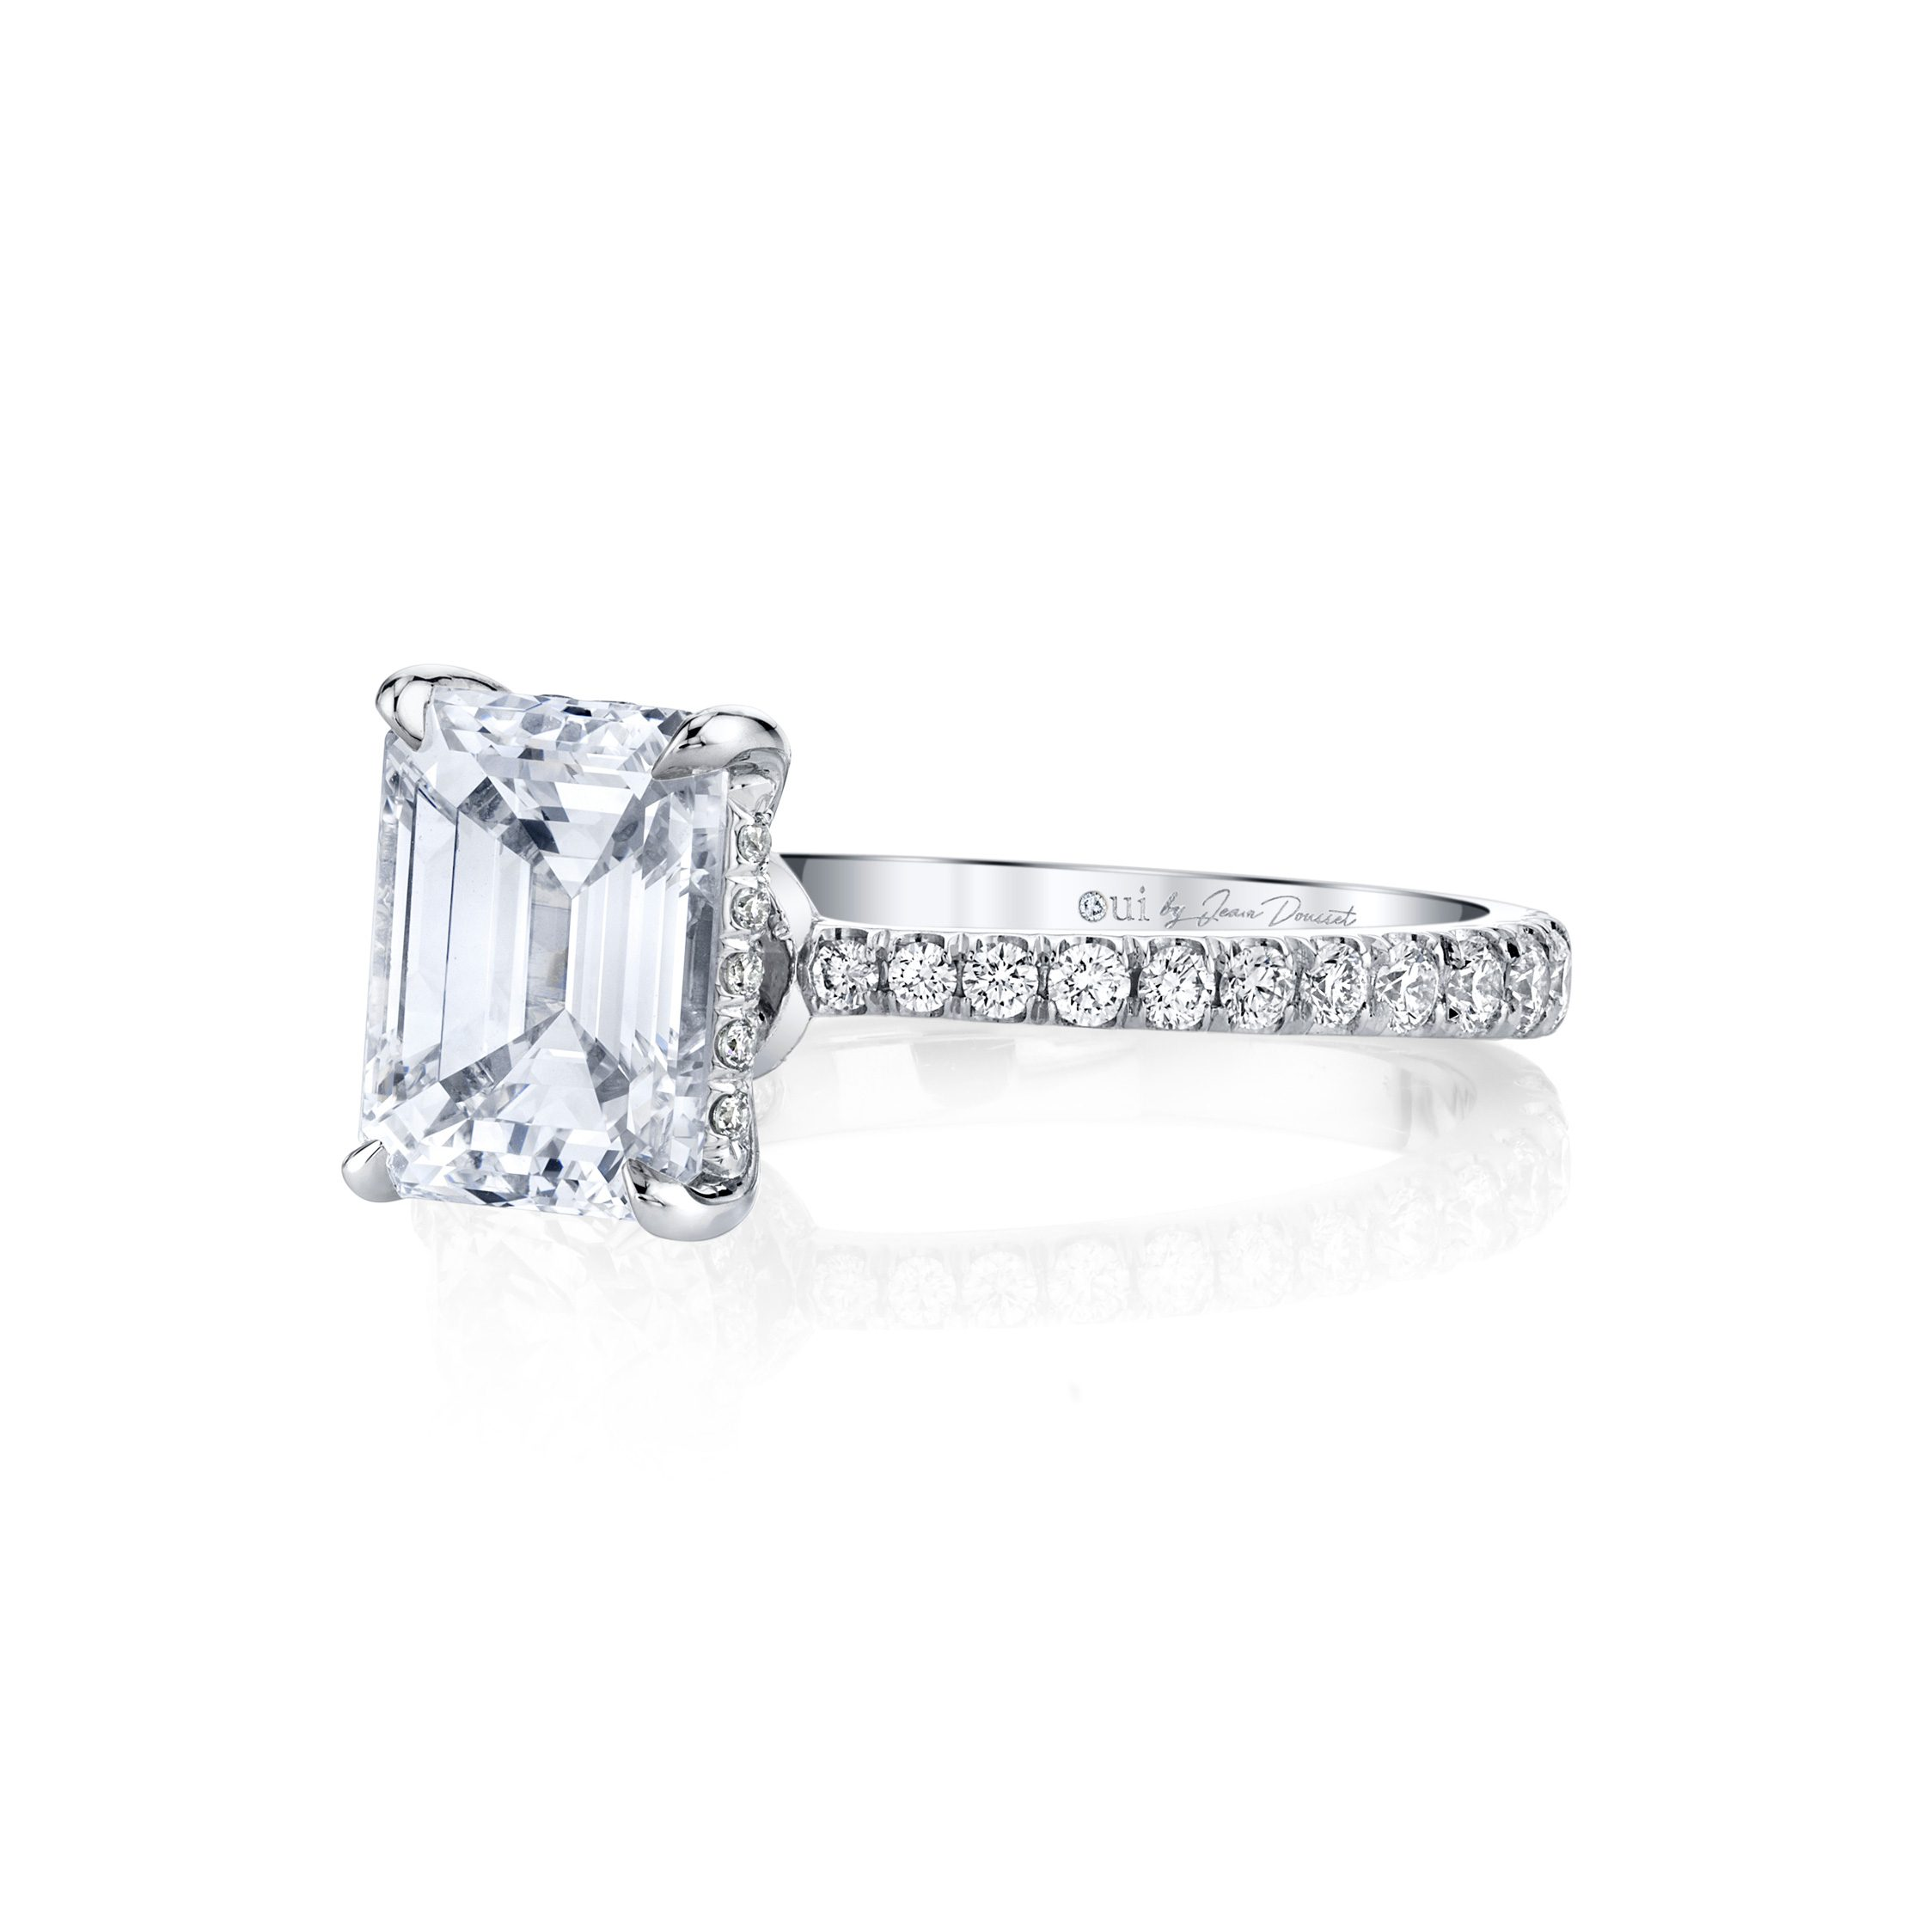 Eloise Emerald Solitaire Engagement Ring with a diamond pavé band in 18k White Gold Side View by Oui by Jean Dousset